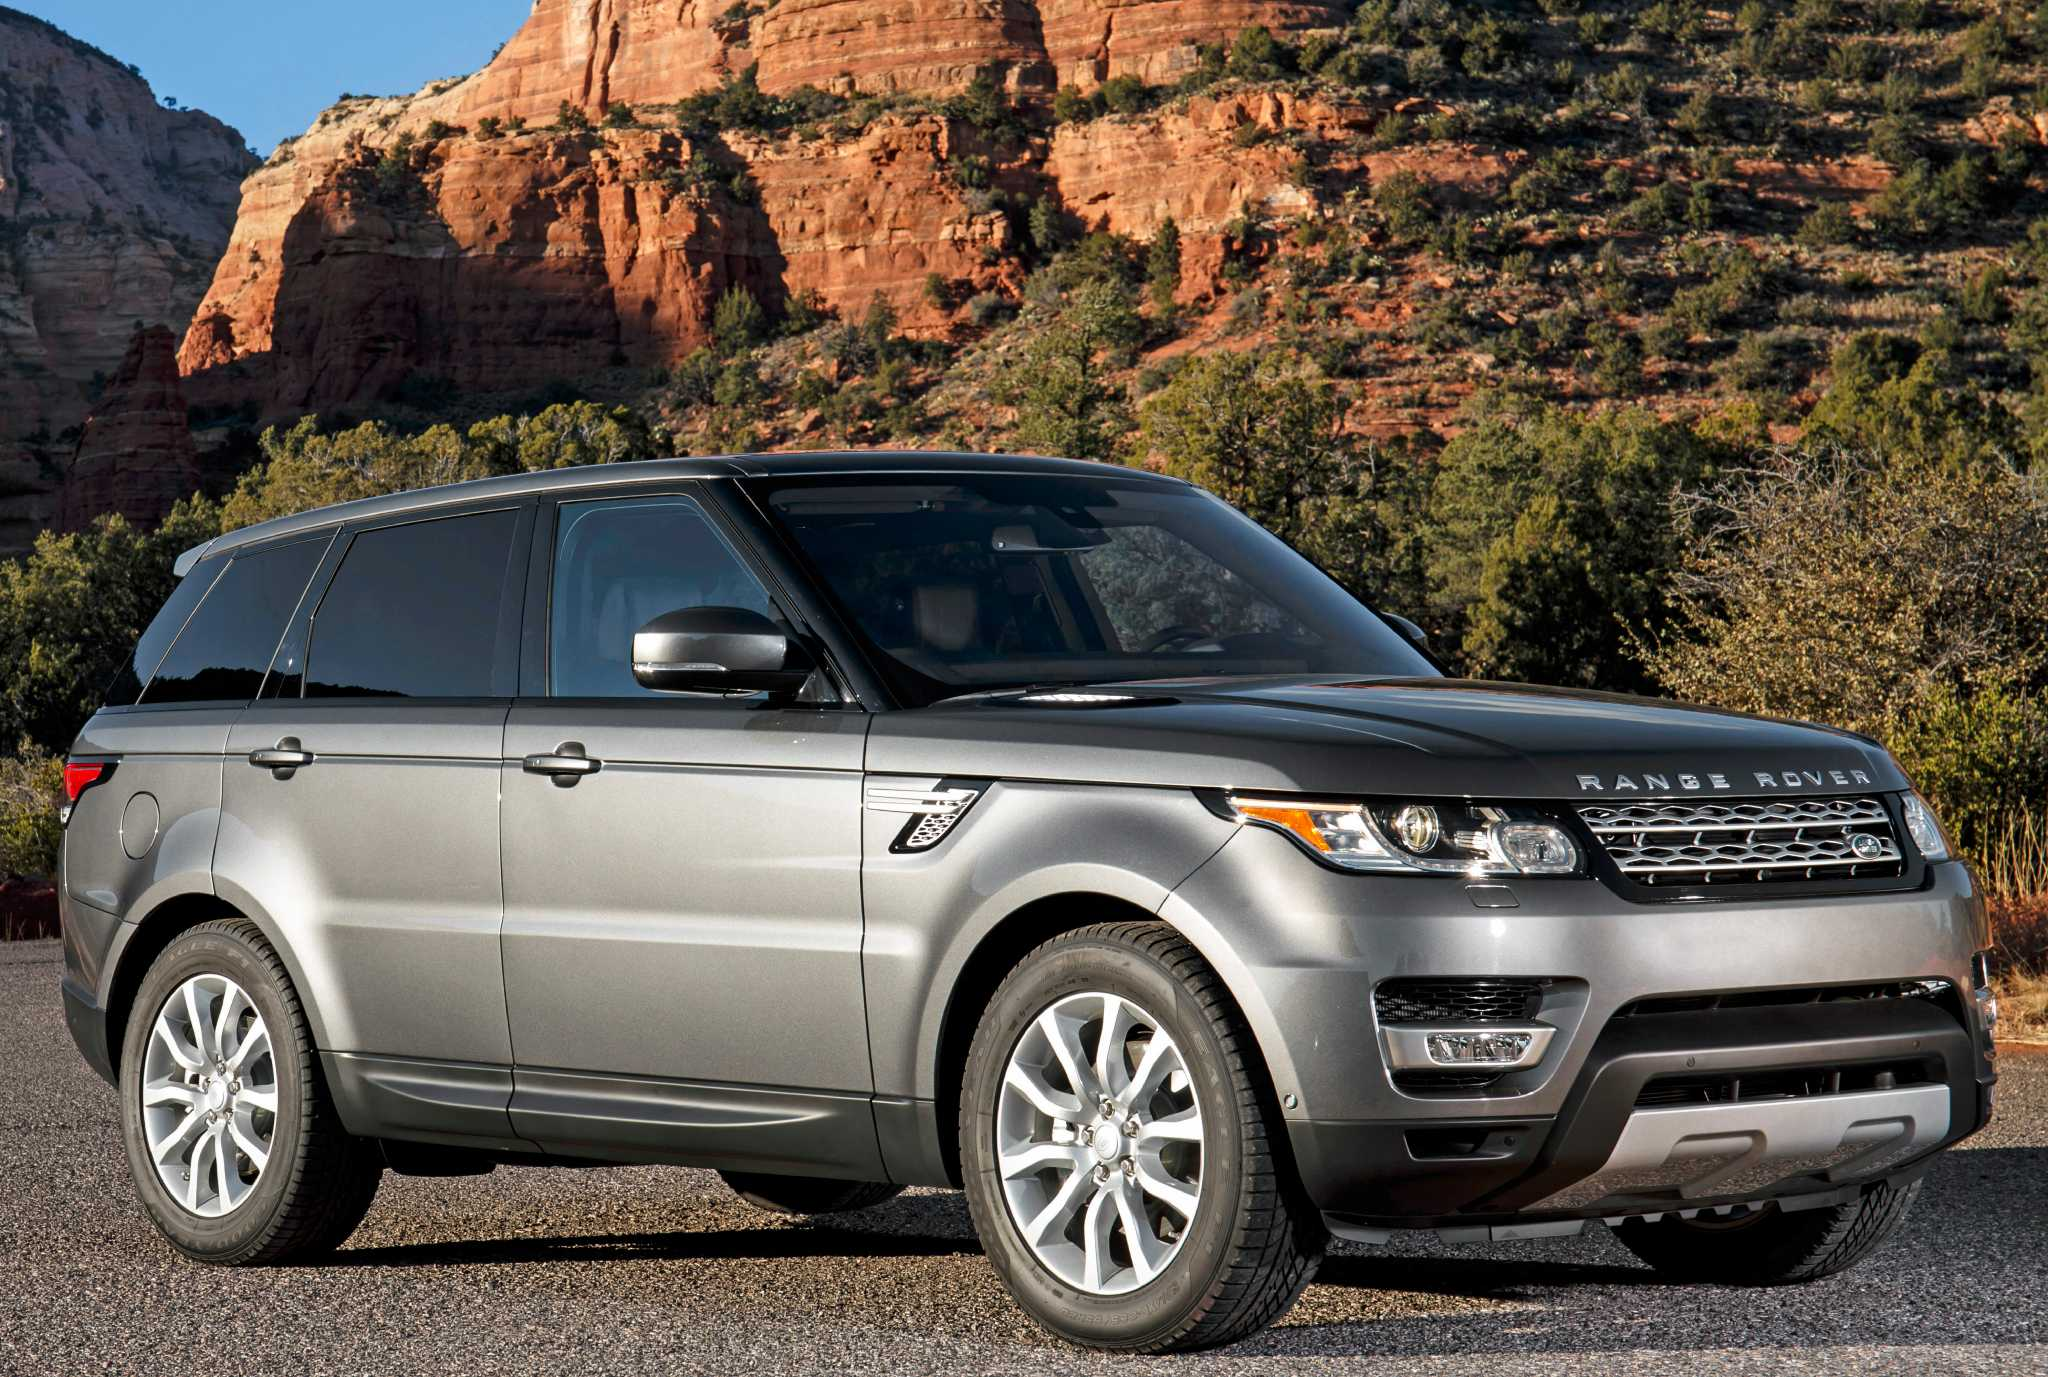 range rover sport lifts fuel economy with new engine option houston chronicle. Black Bedroom Furniture Sets. Home Design Ideas